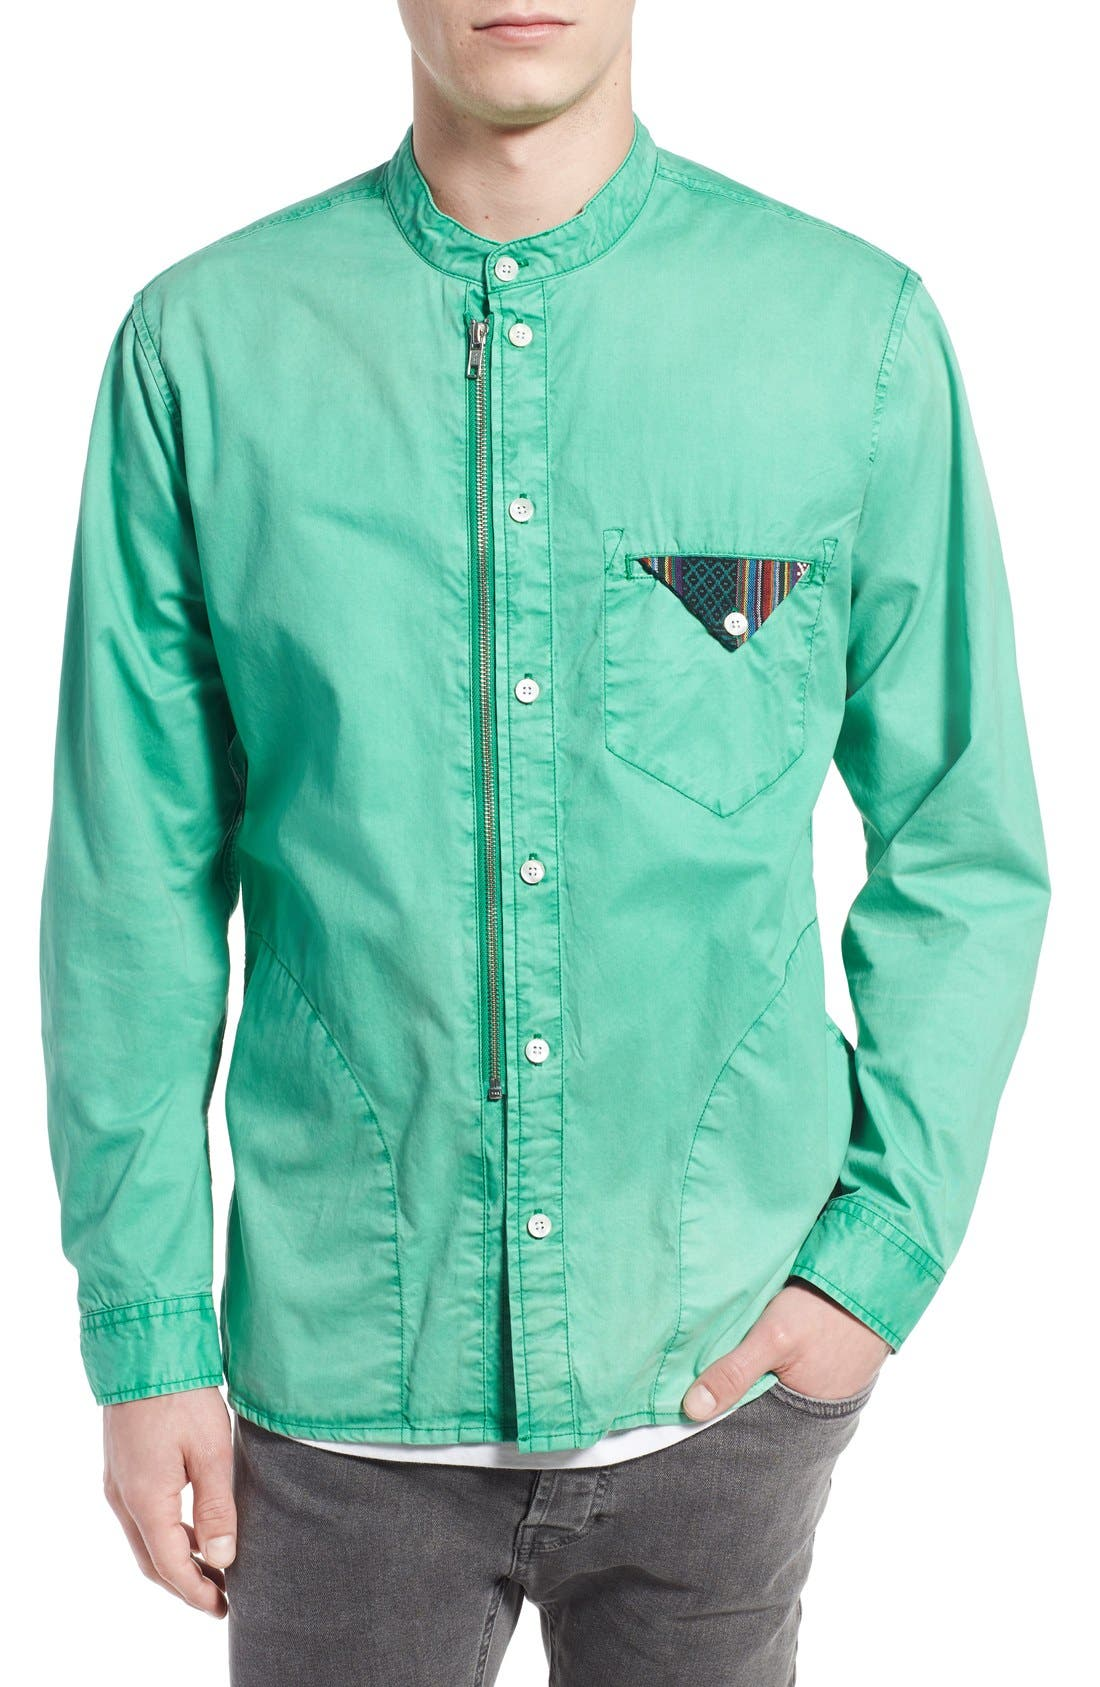 Alternate Image 1 Selected - PRPS 'Cotinga' Extra Trim Fit Band Collar Woven Shirt